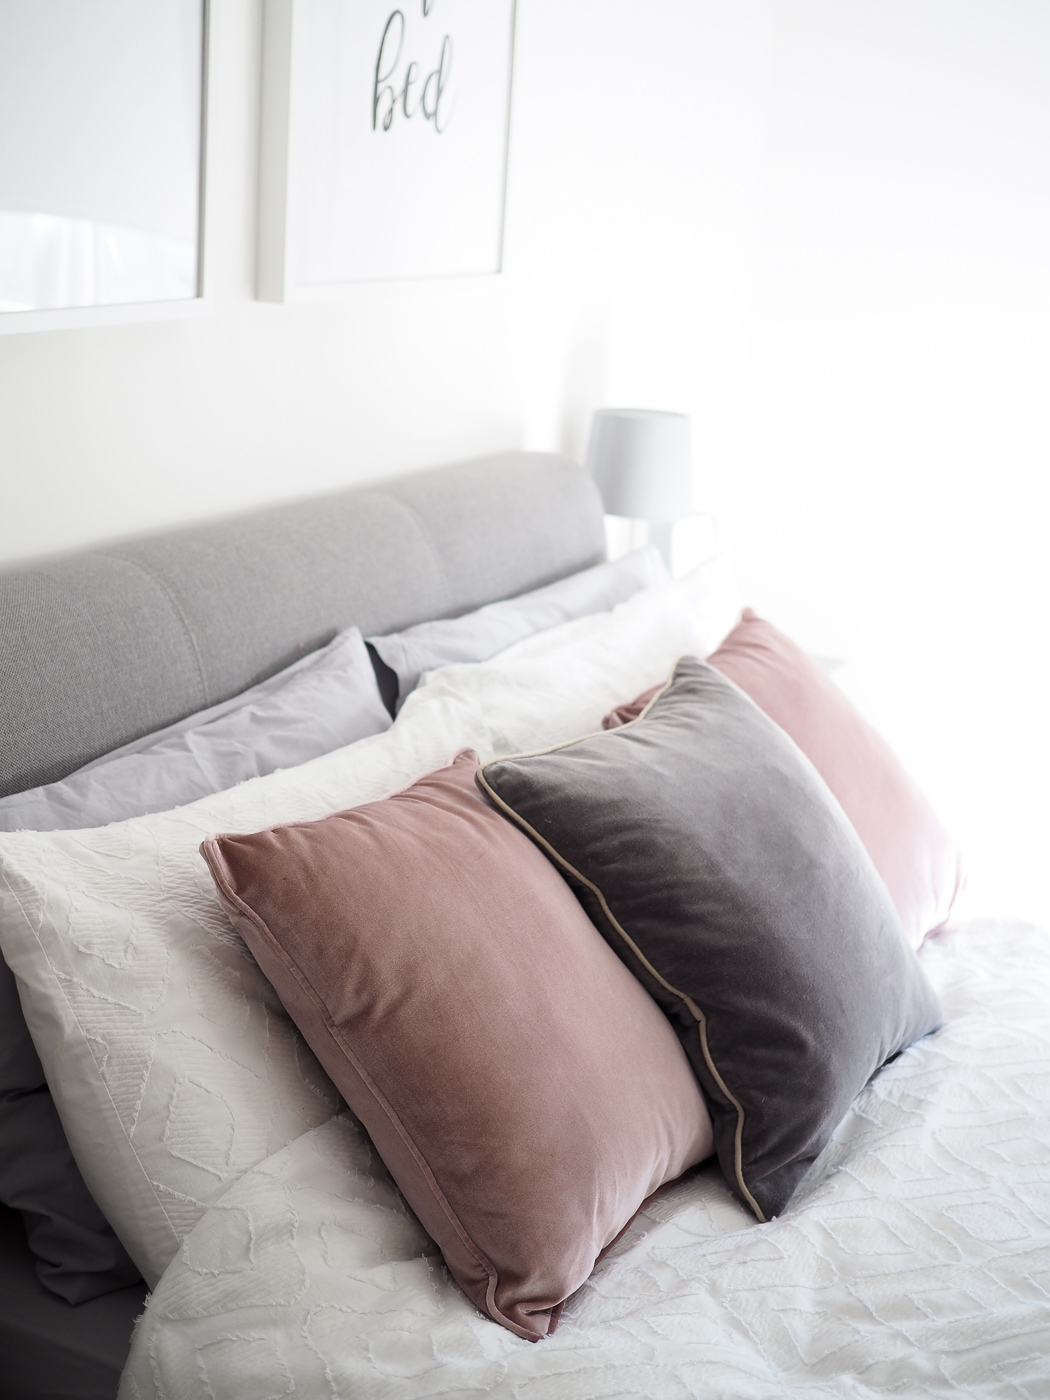 scanid bedroom pink and grey cushions on bed white duvet